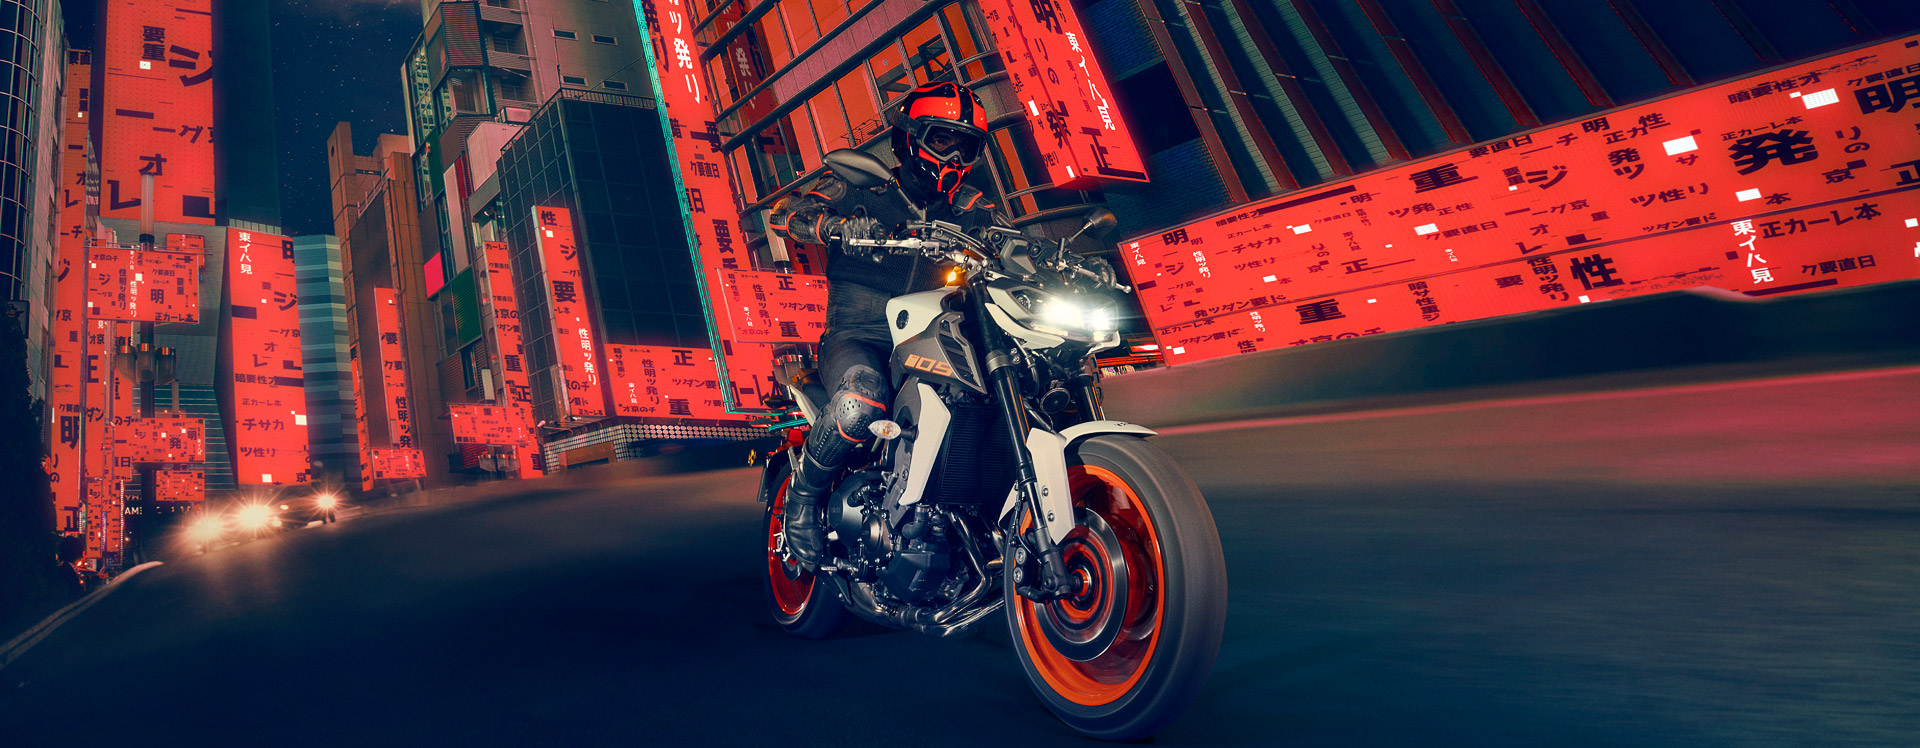 2020 Yamaha MT 09 Hyper Naked Motorcycle Model Home